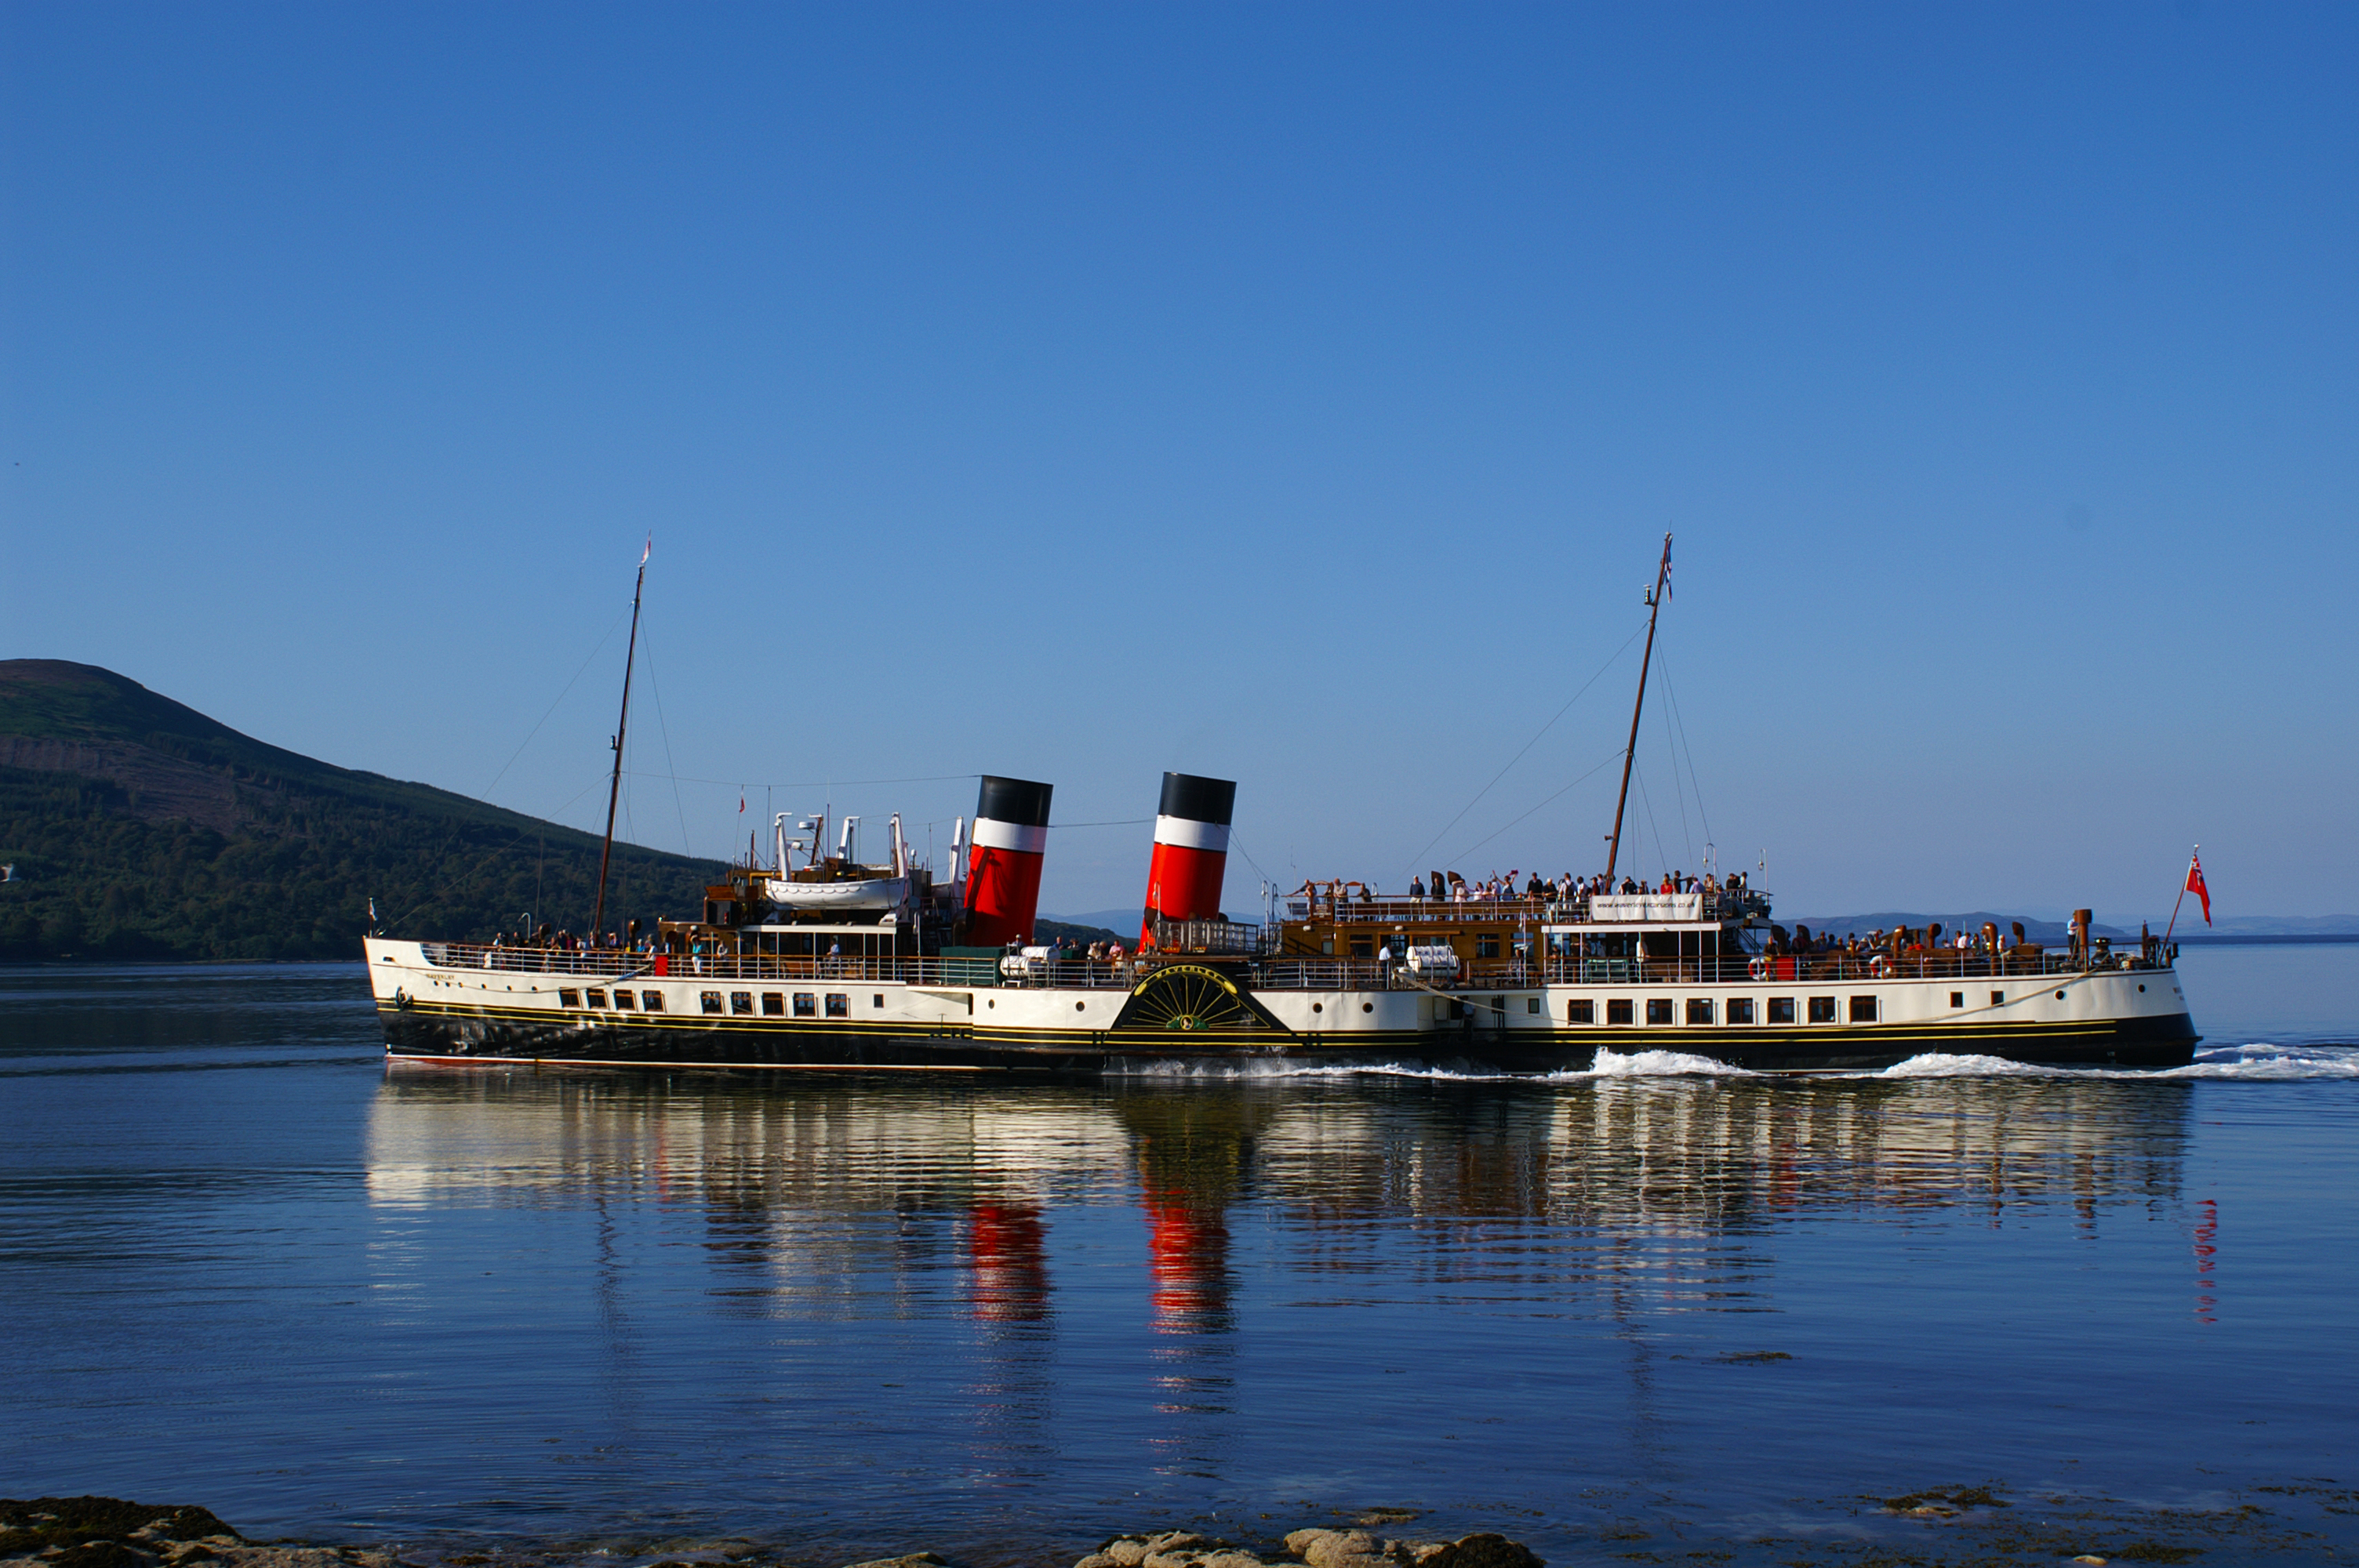 The Waverley is set to visit the Western Isles towards the end of the month